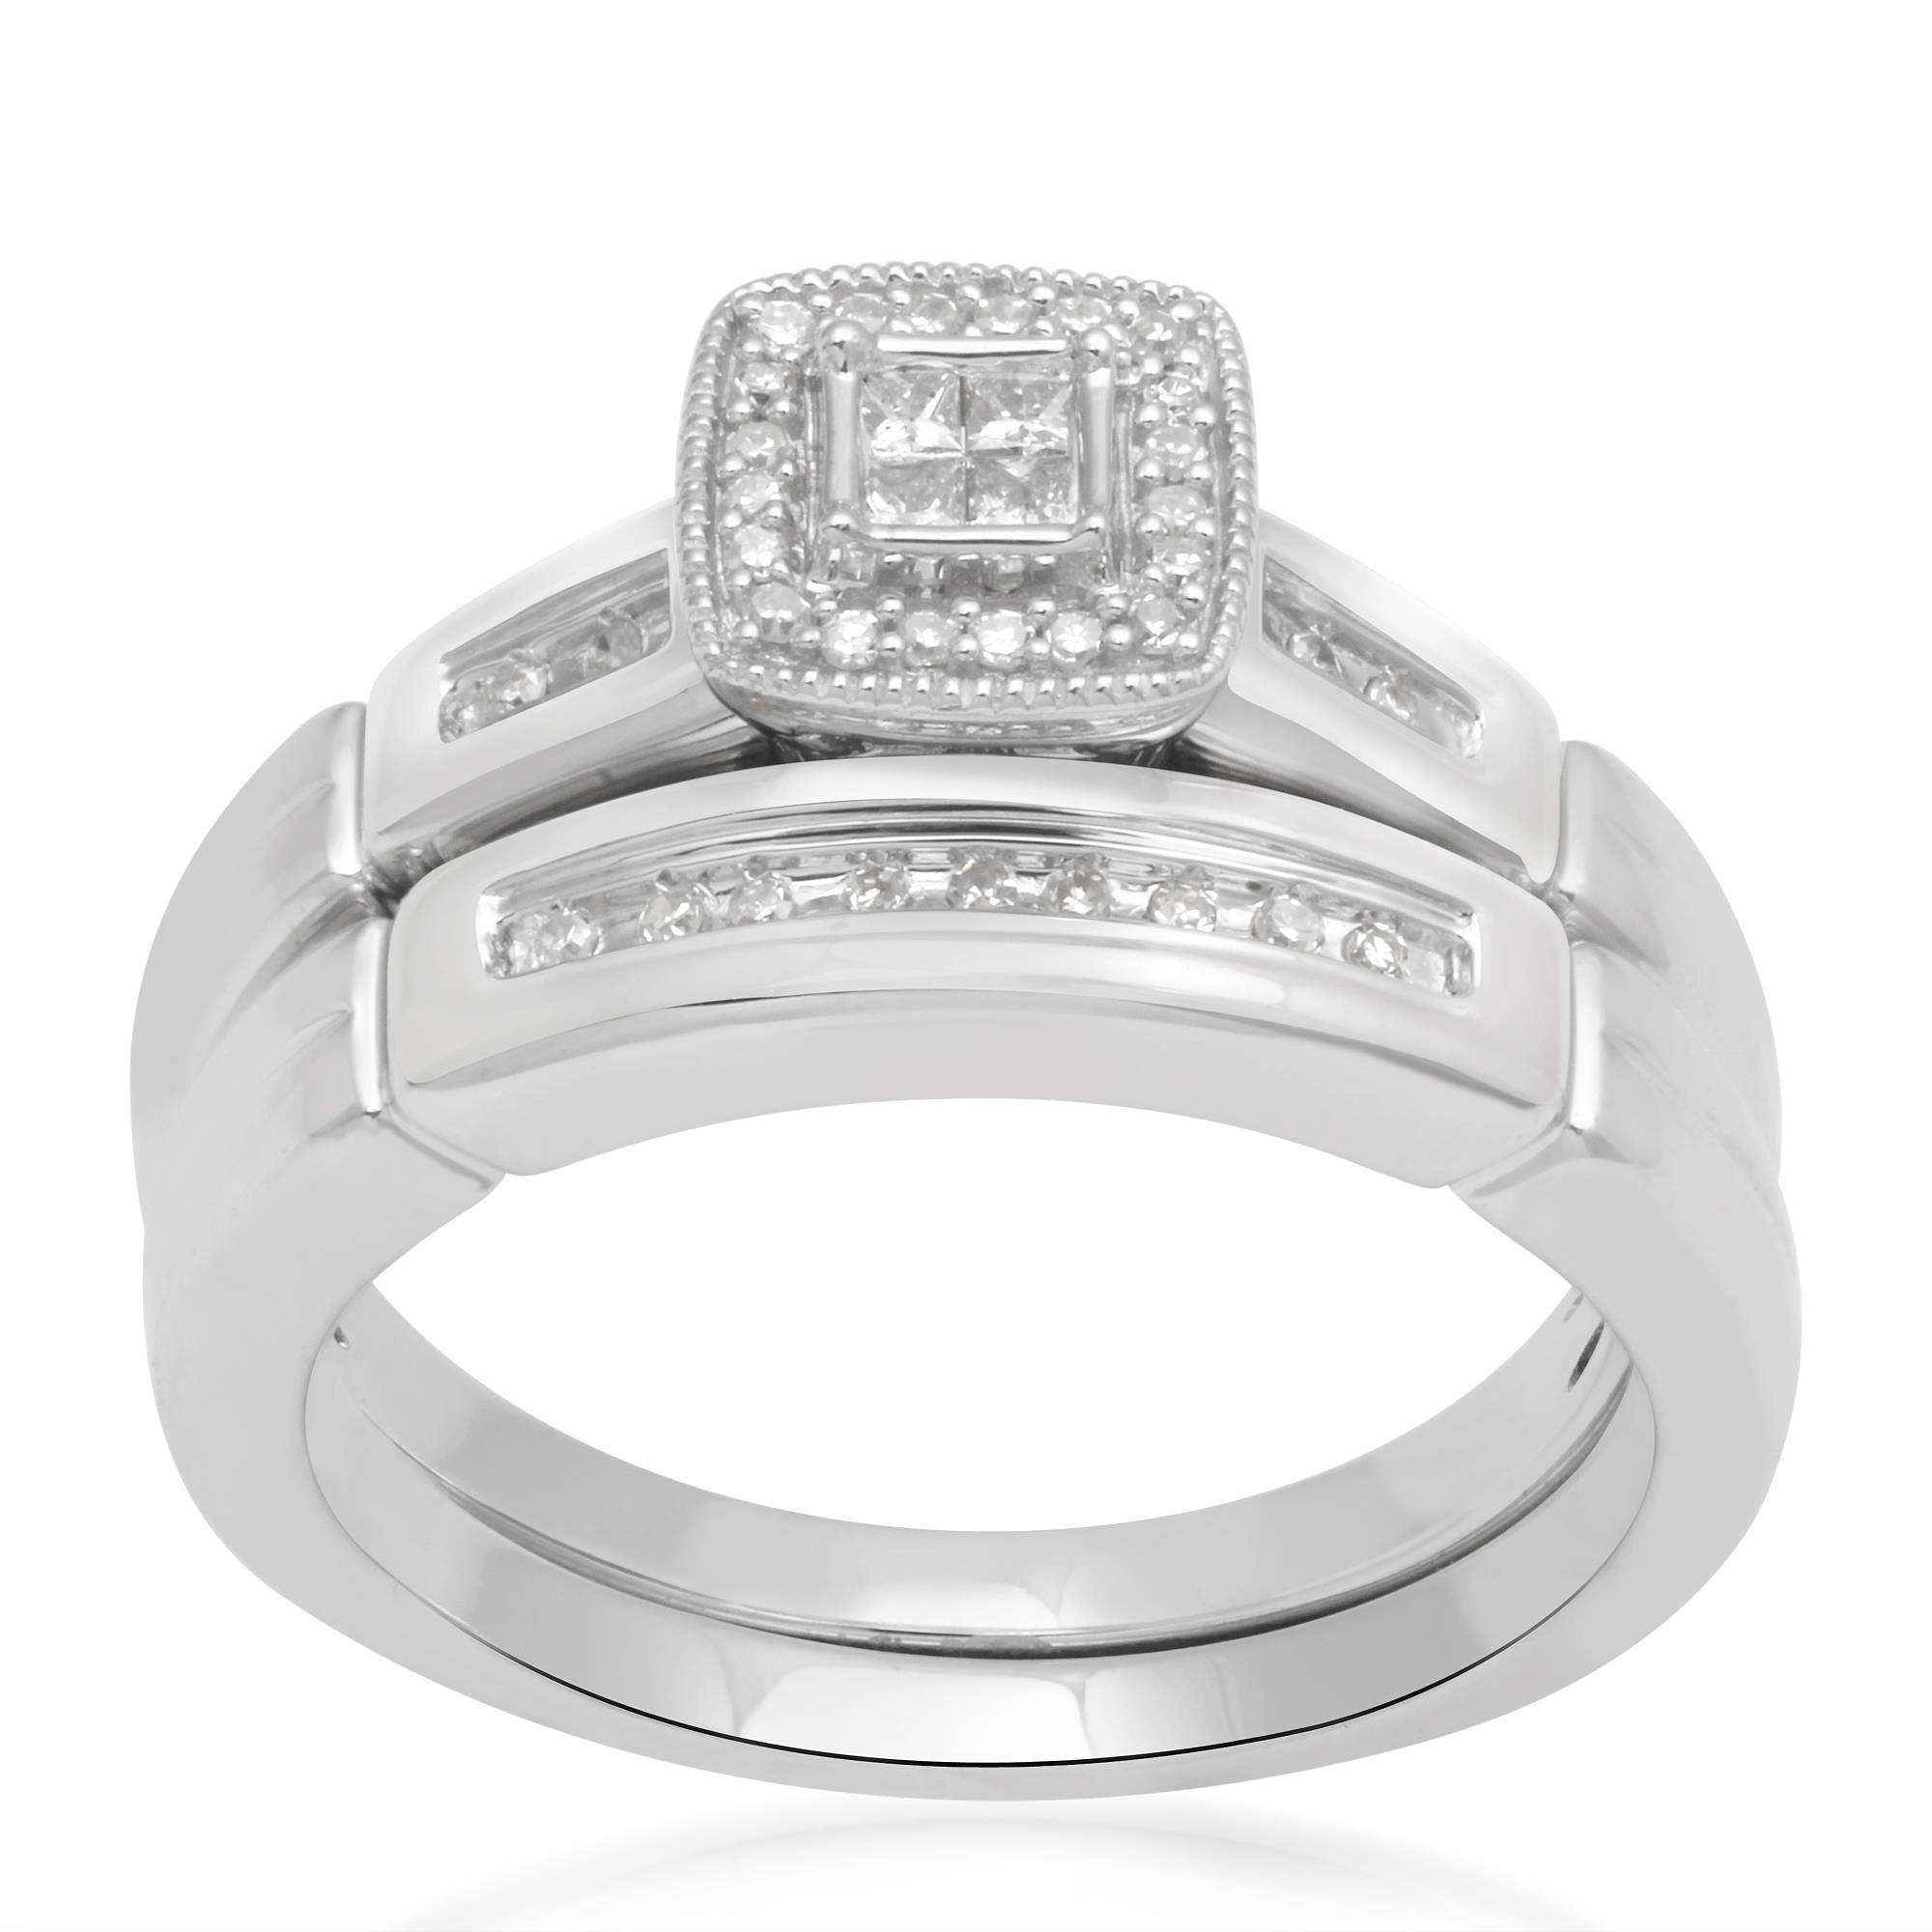 Forever Bride 1/5 Carat T.W. Diamond Sterling Silver Bridal Set